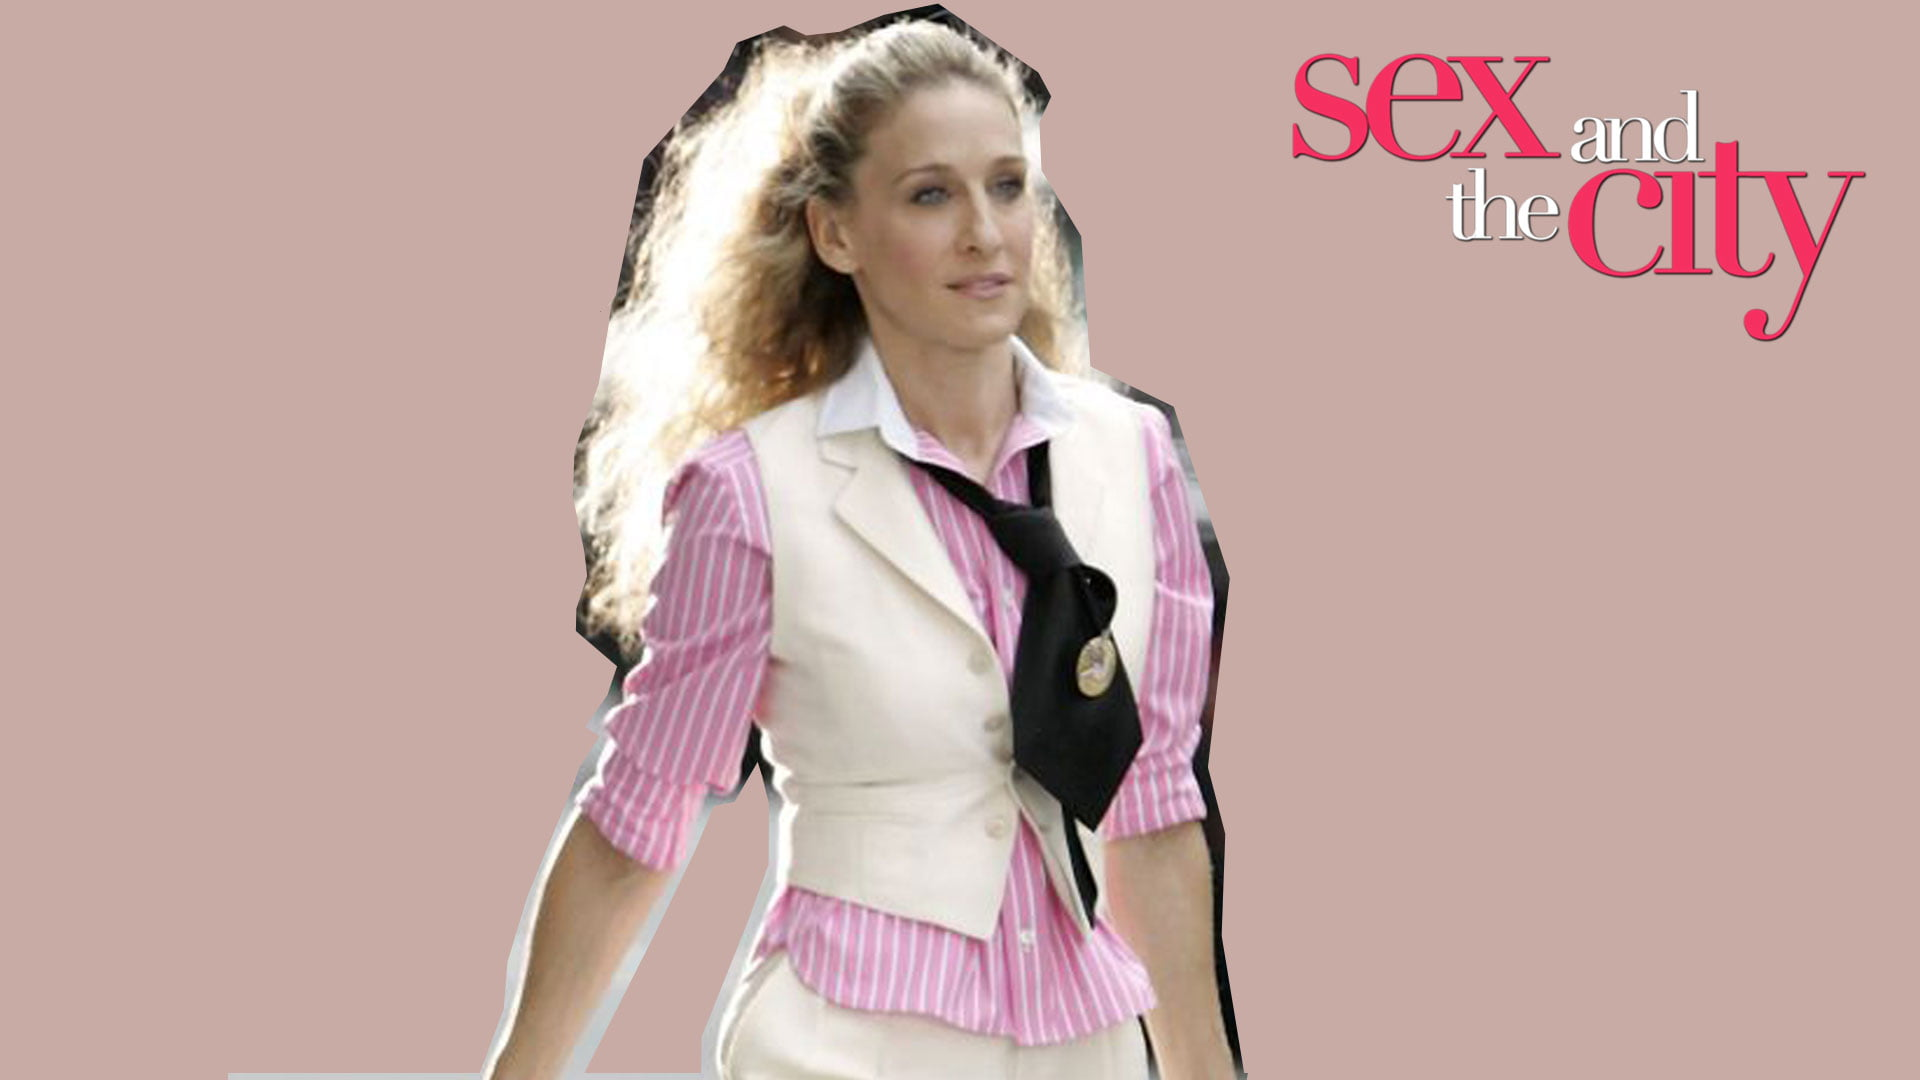 Carrie Bradshaw from Sex and the City